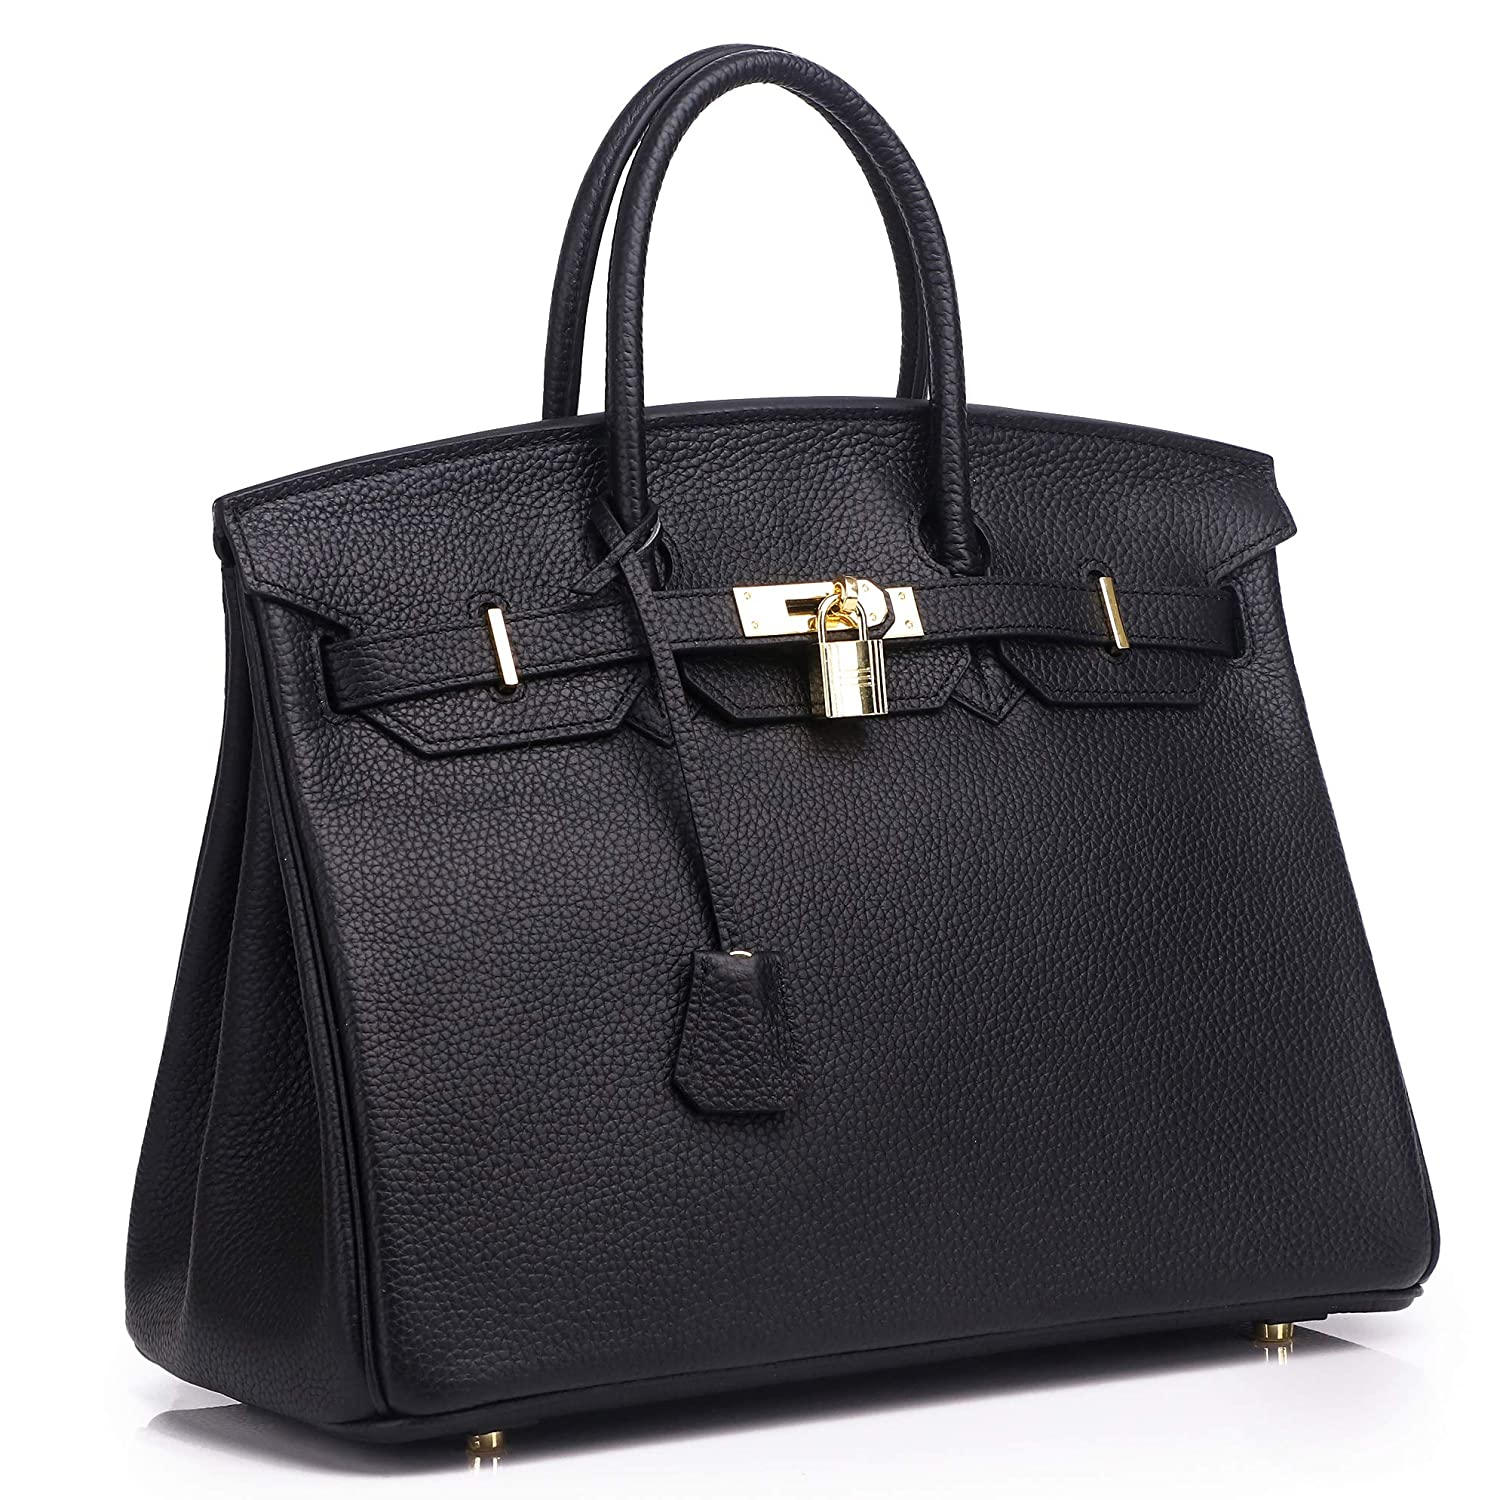 6025320c895e Amazon.com  Kueh Women s Genuine Leather Tote Bag Top Handle Handbags  Shoes